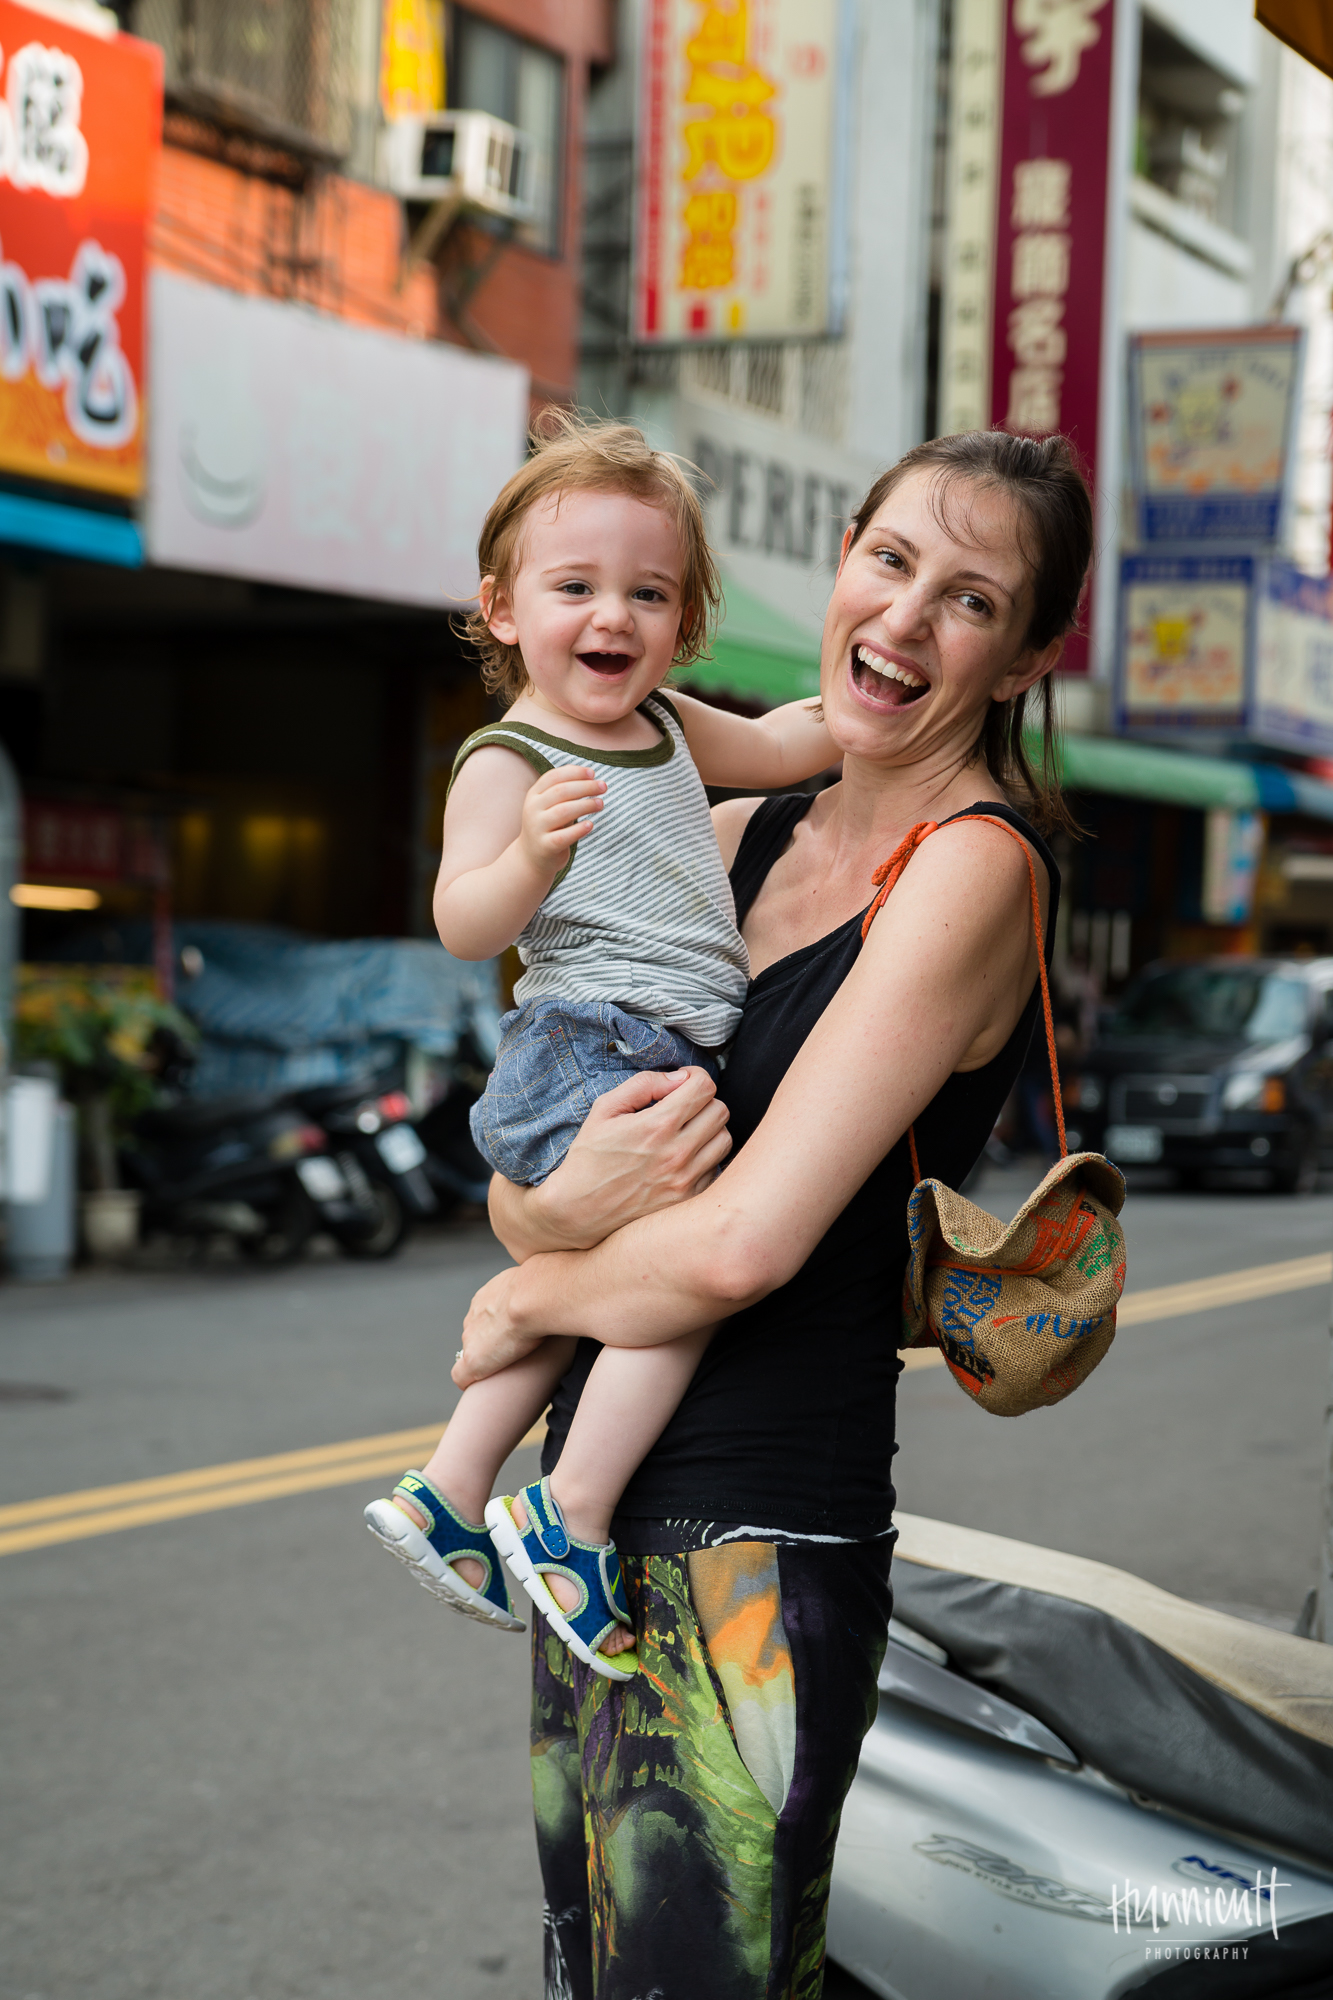 Hunnicutt_Photography_Taichung_Urban_Lifestyle_Family_Photography-9